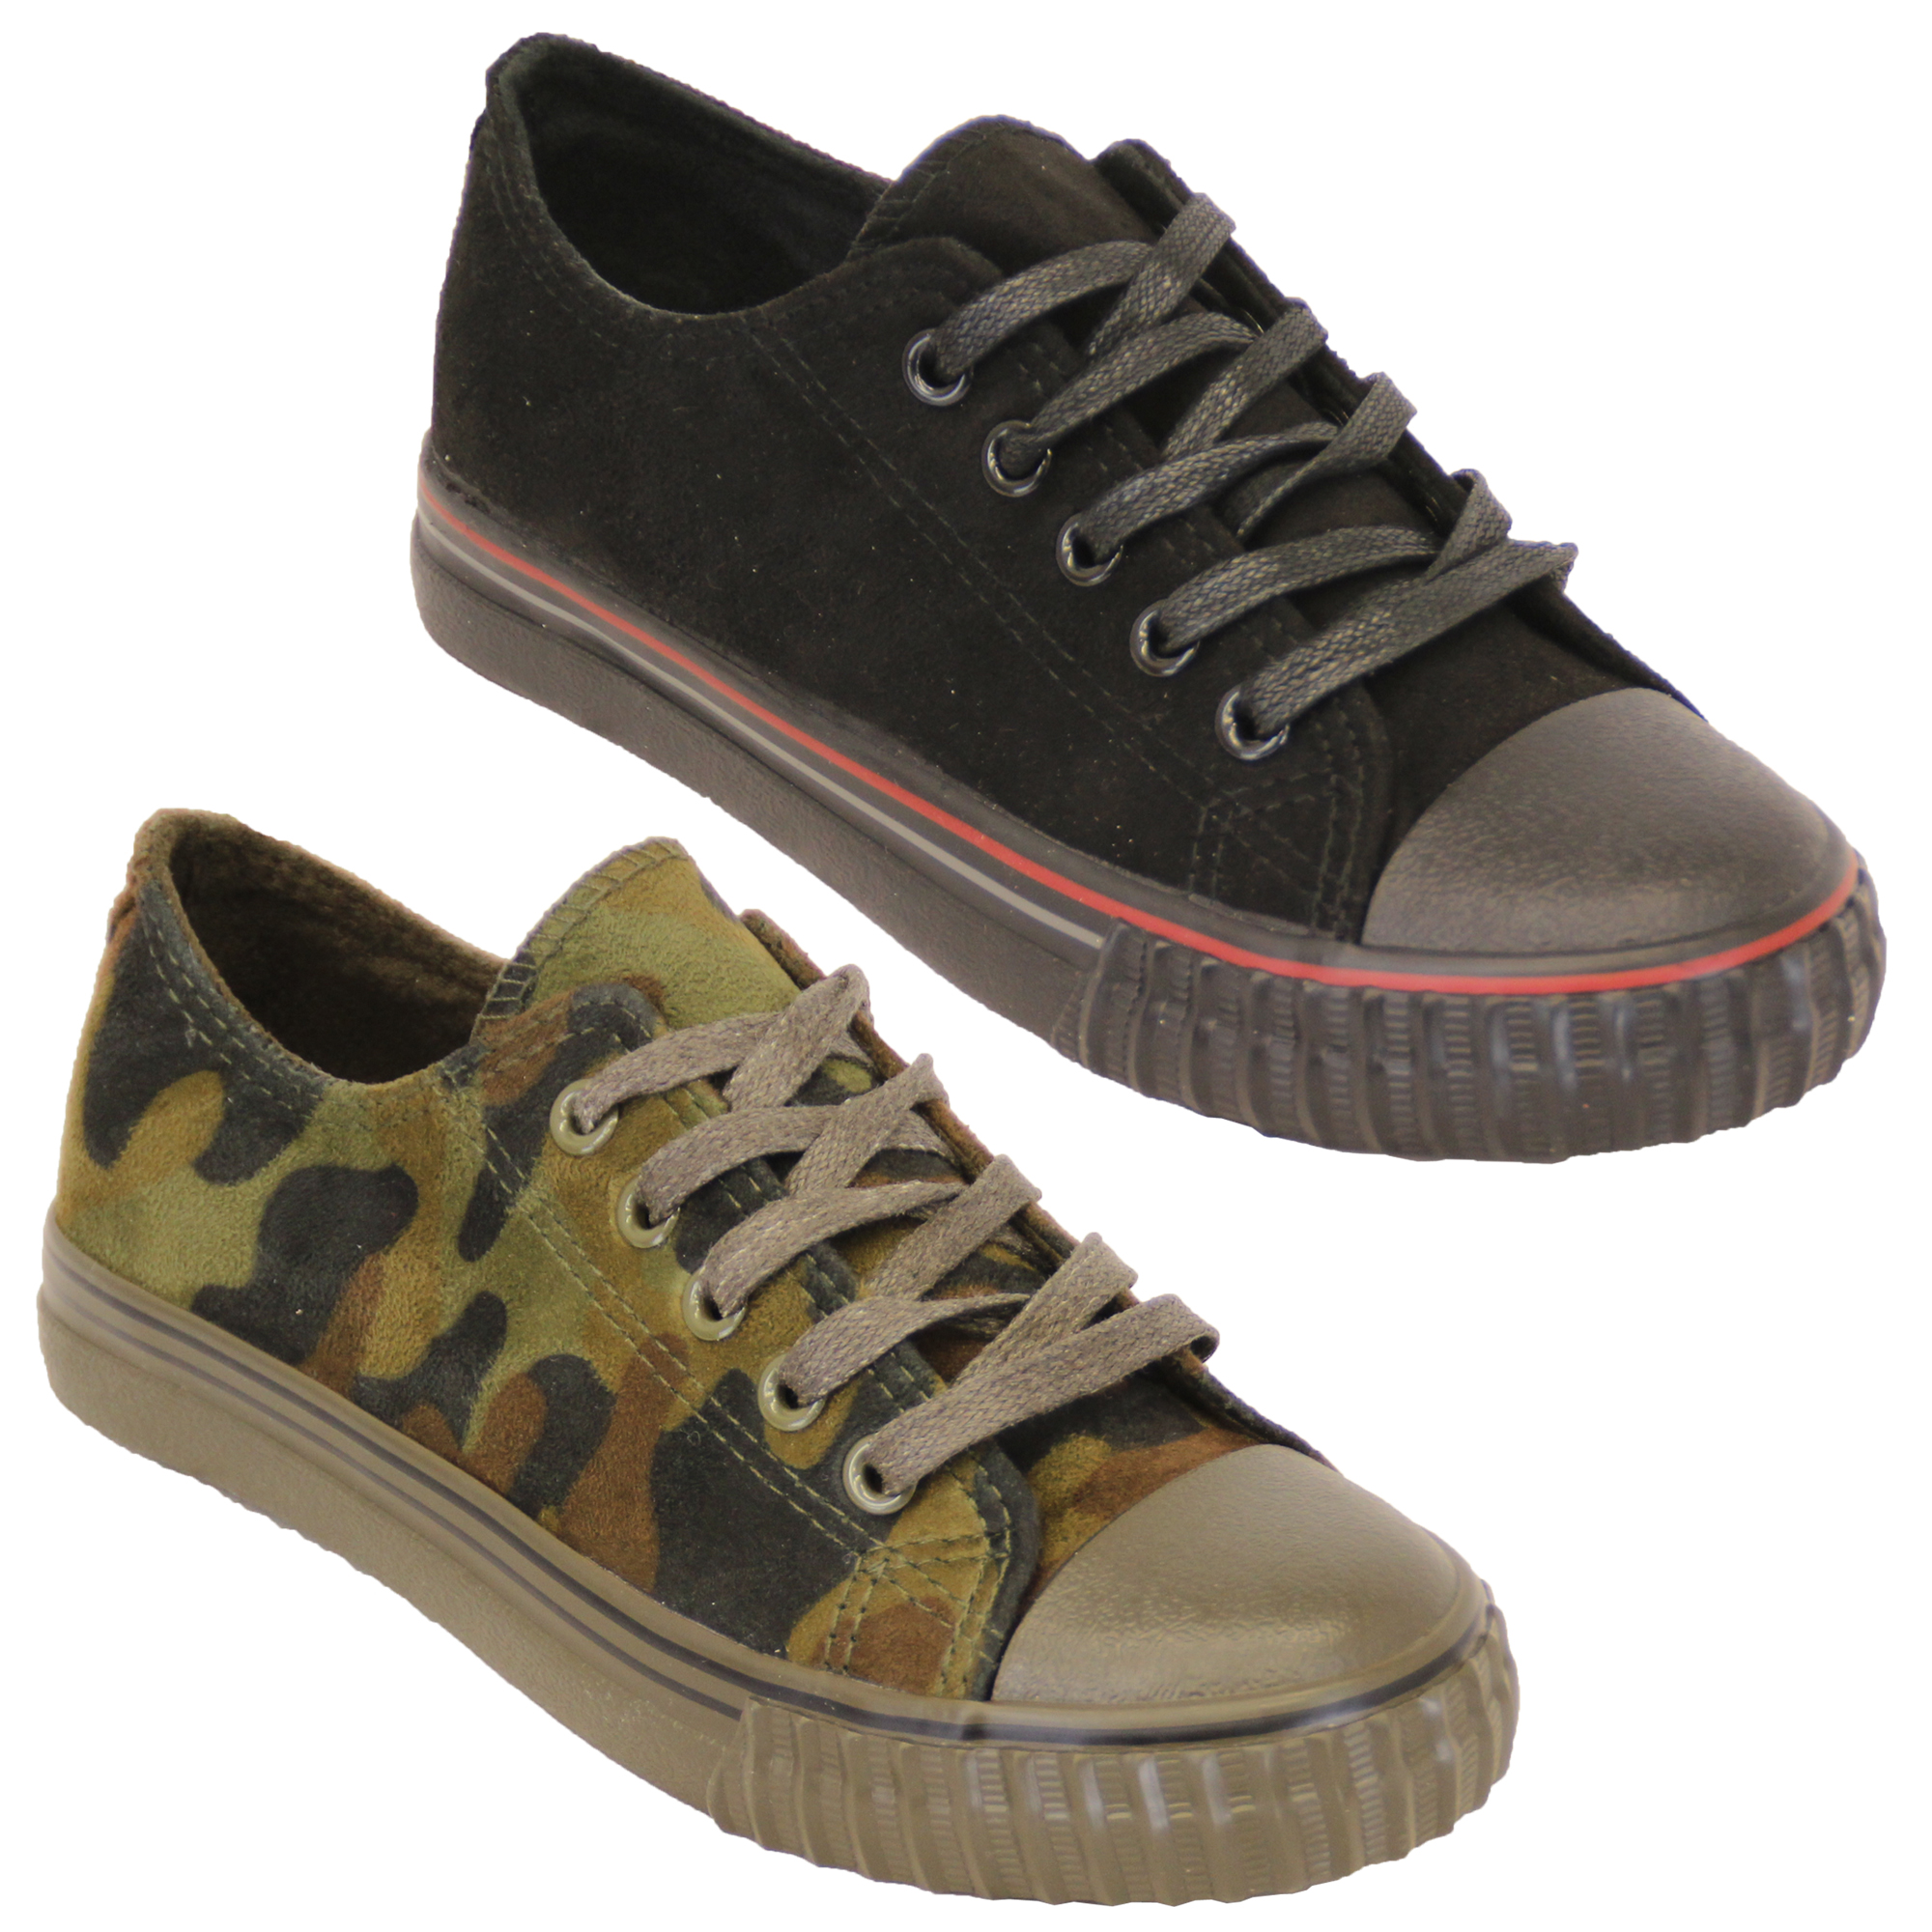 Boys-Girls-Camouflage-Pumps-Kids-Military-Trainers-Lace-Up-Shoes-Casual-Summer thumbnail 5